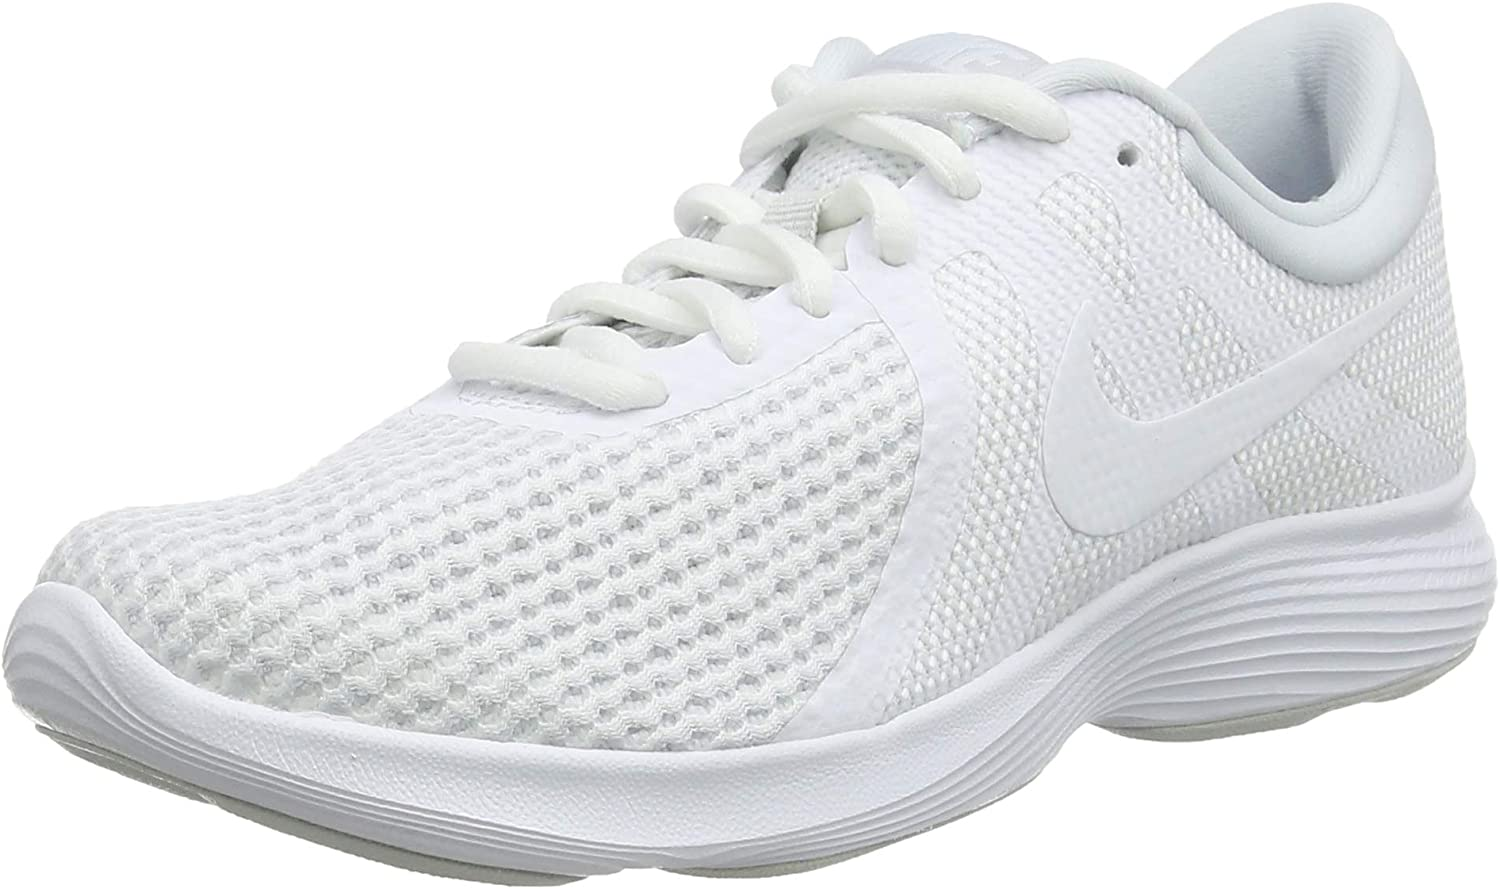 Ladies Revolution 4 Running shoes (EU) - White White